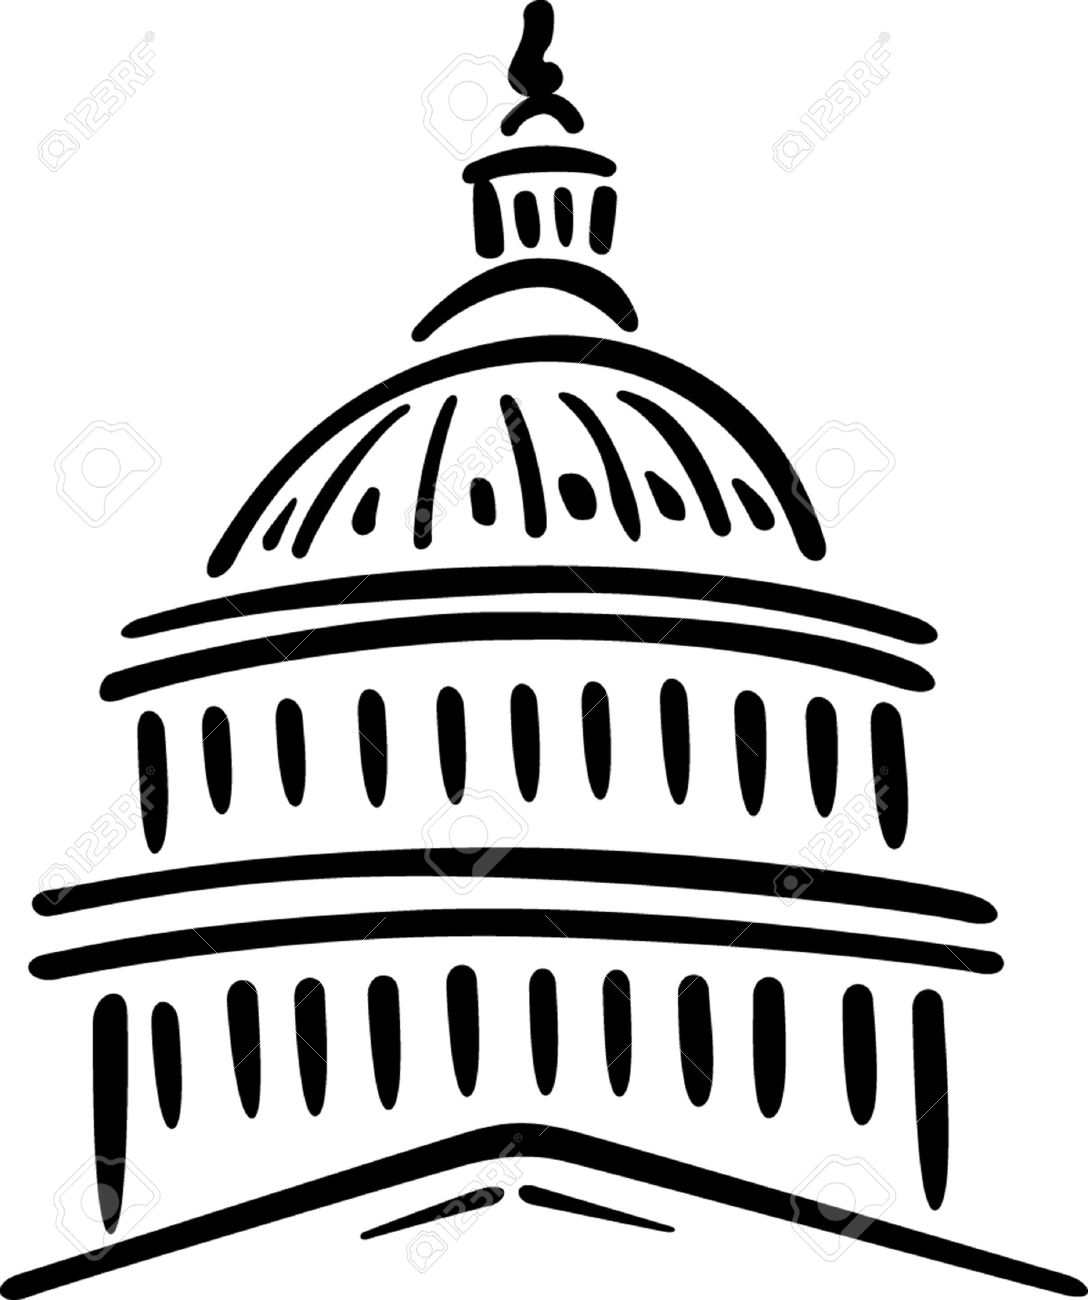 Illustration Of The U S Capitol, Washington D C Royalty Free.